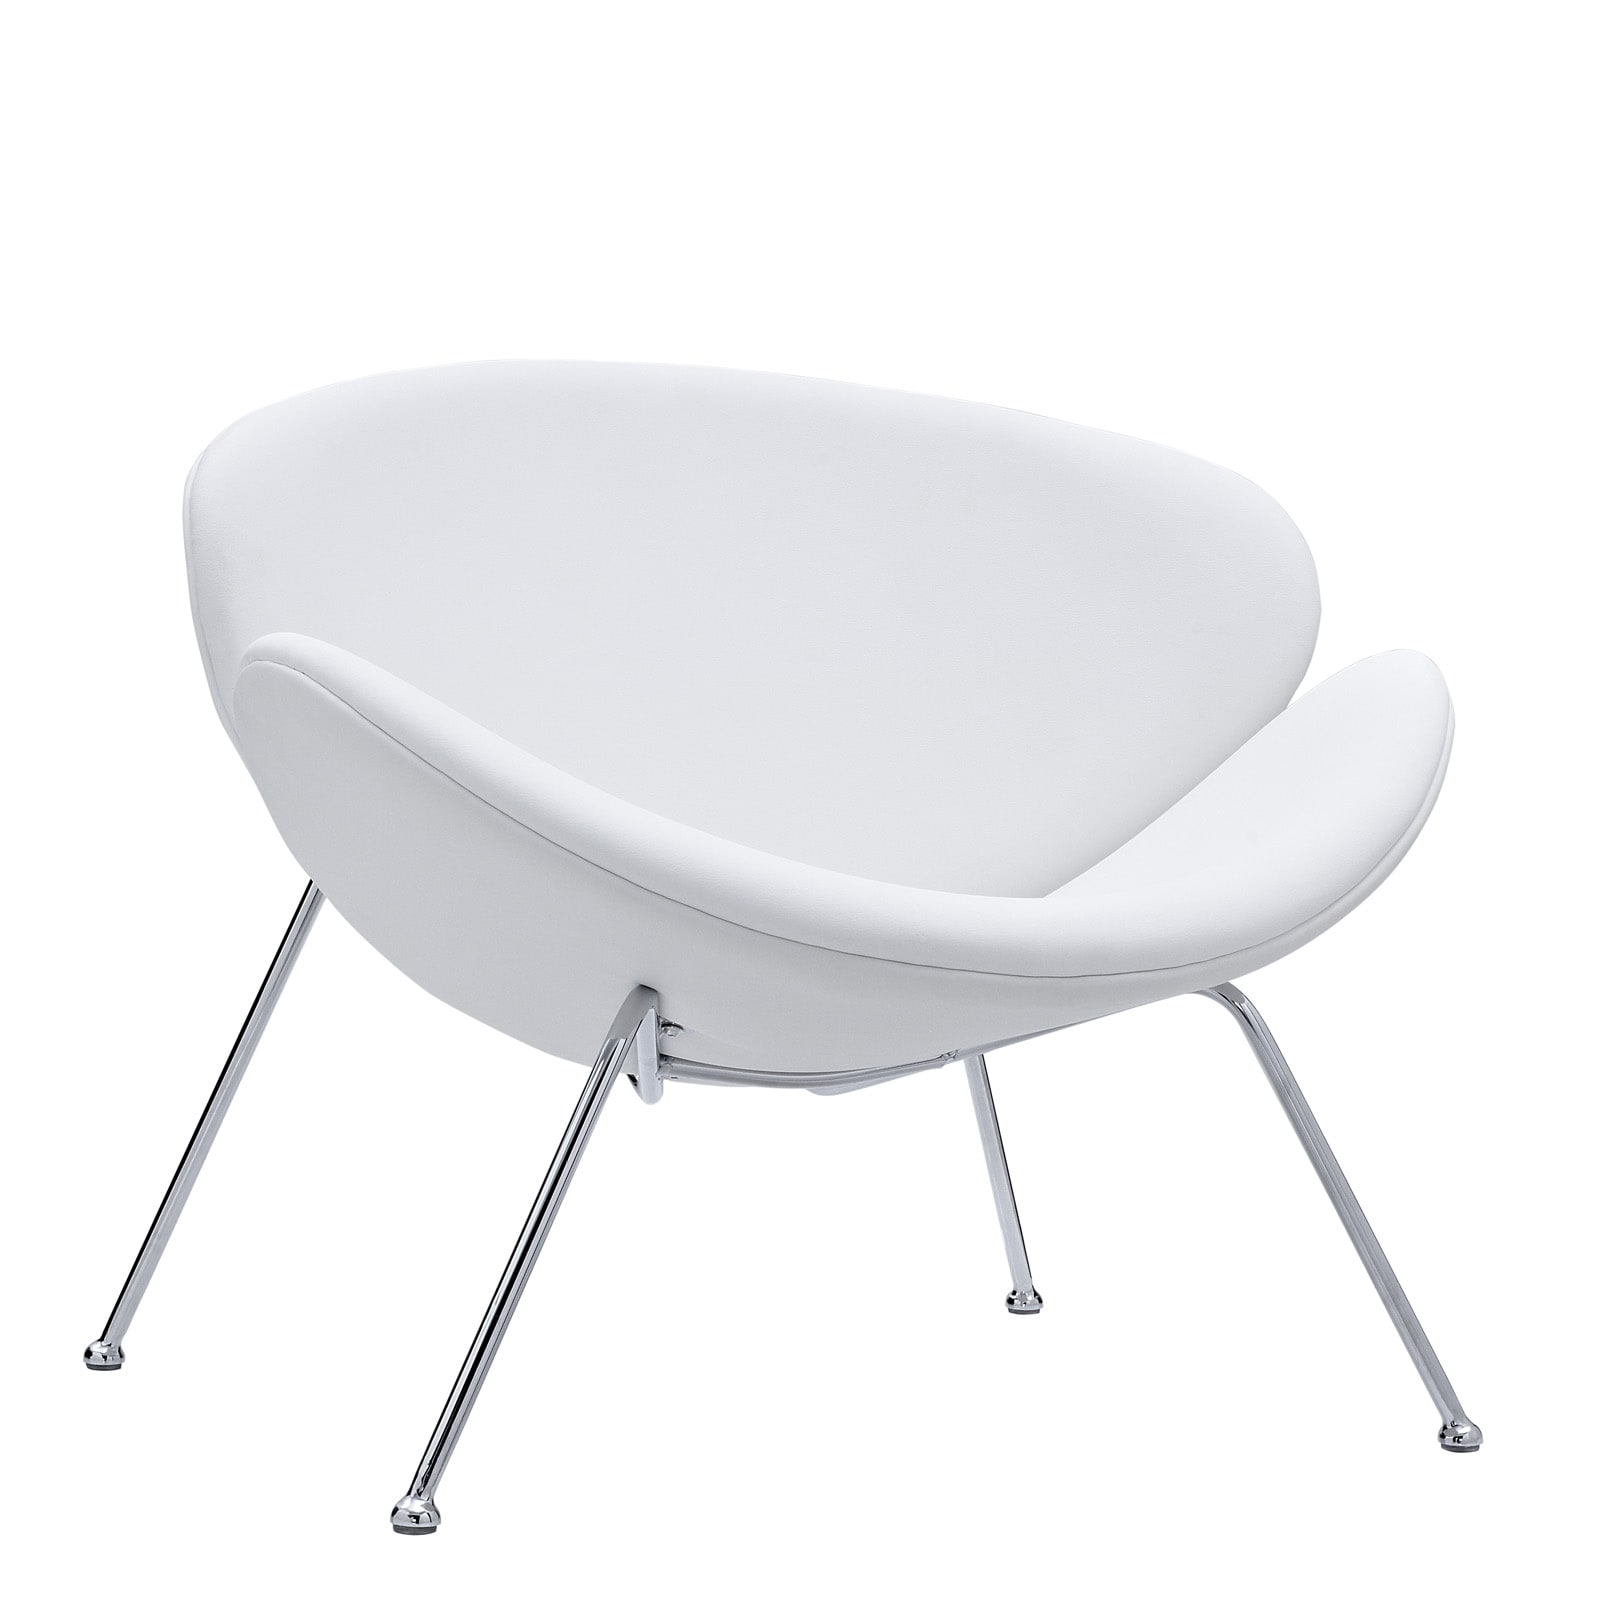 Nutshell White Vinyl Lounge Chair   Free Shipping Today   Overstock    14645942